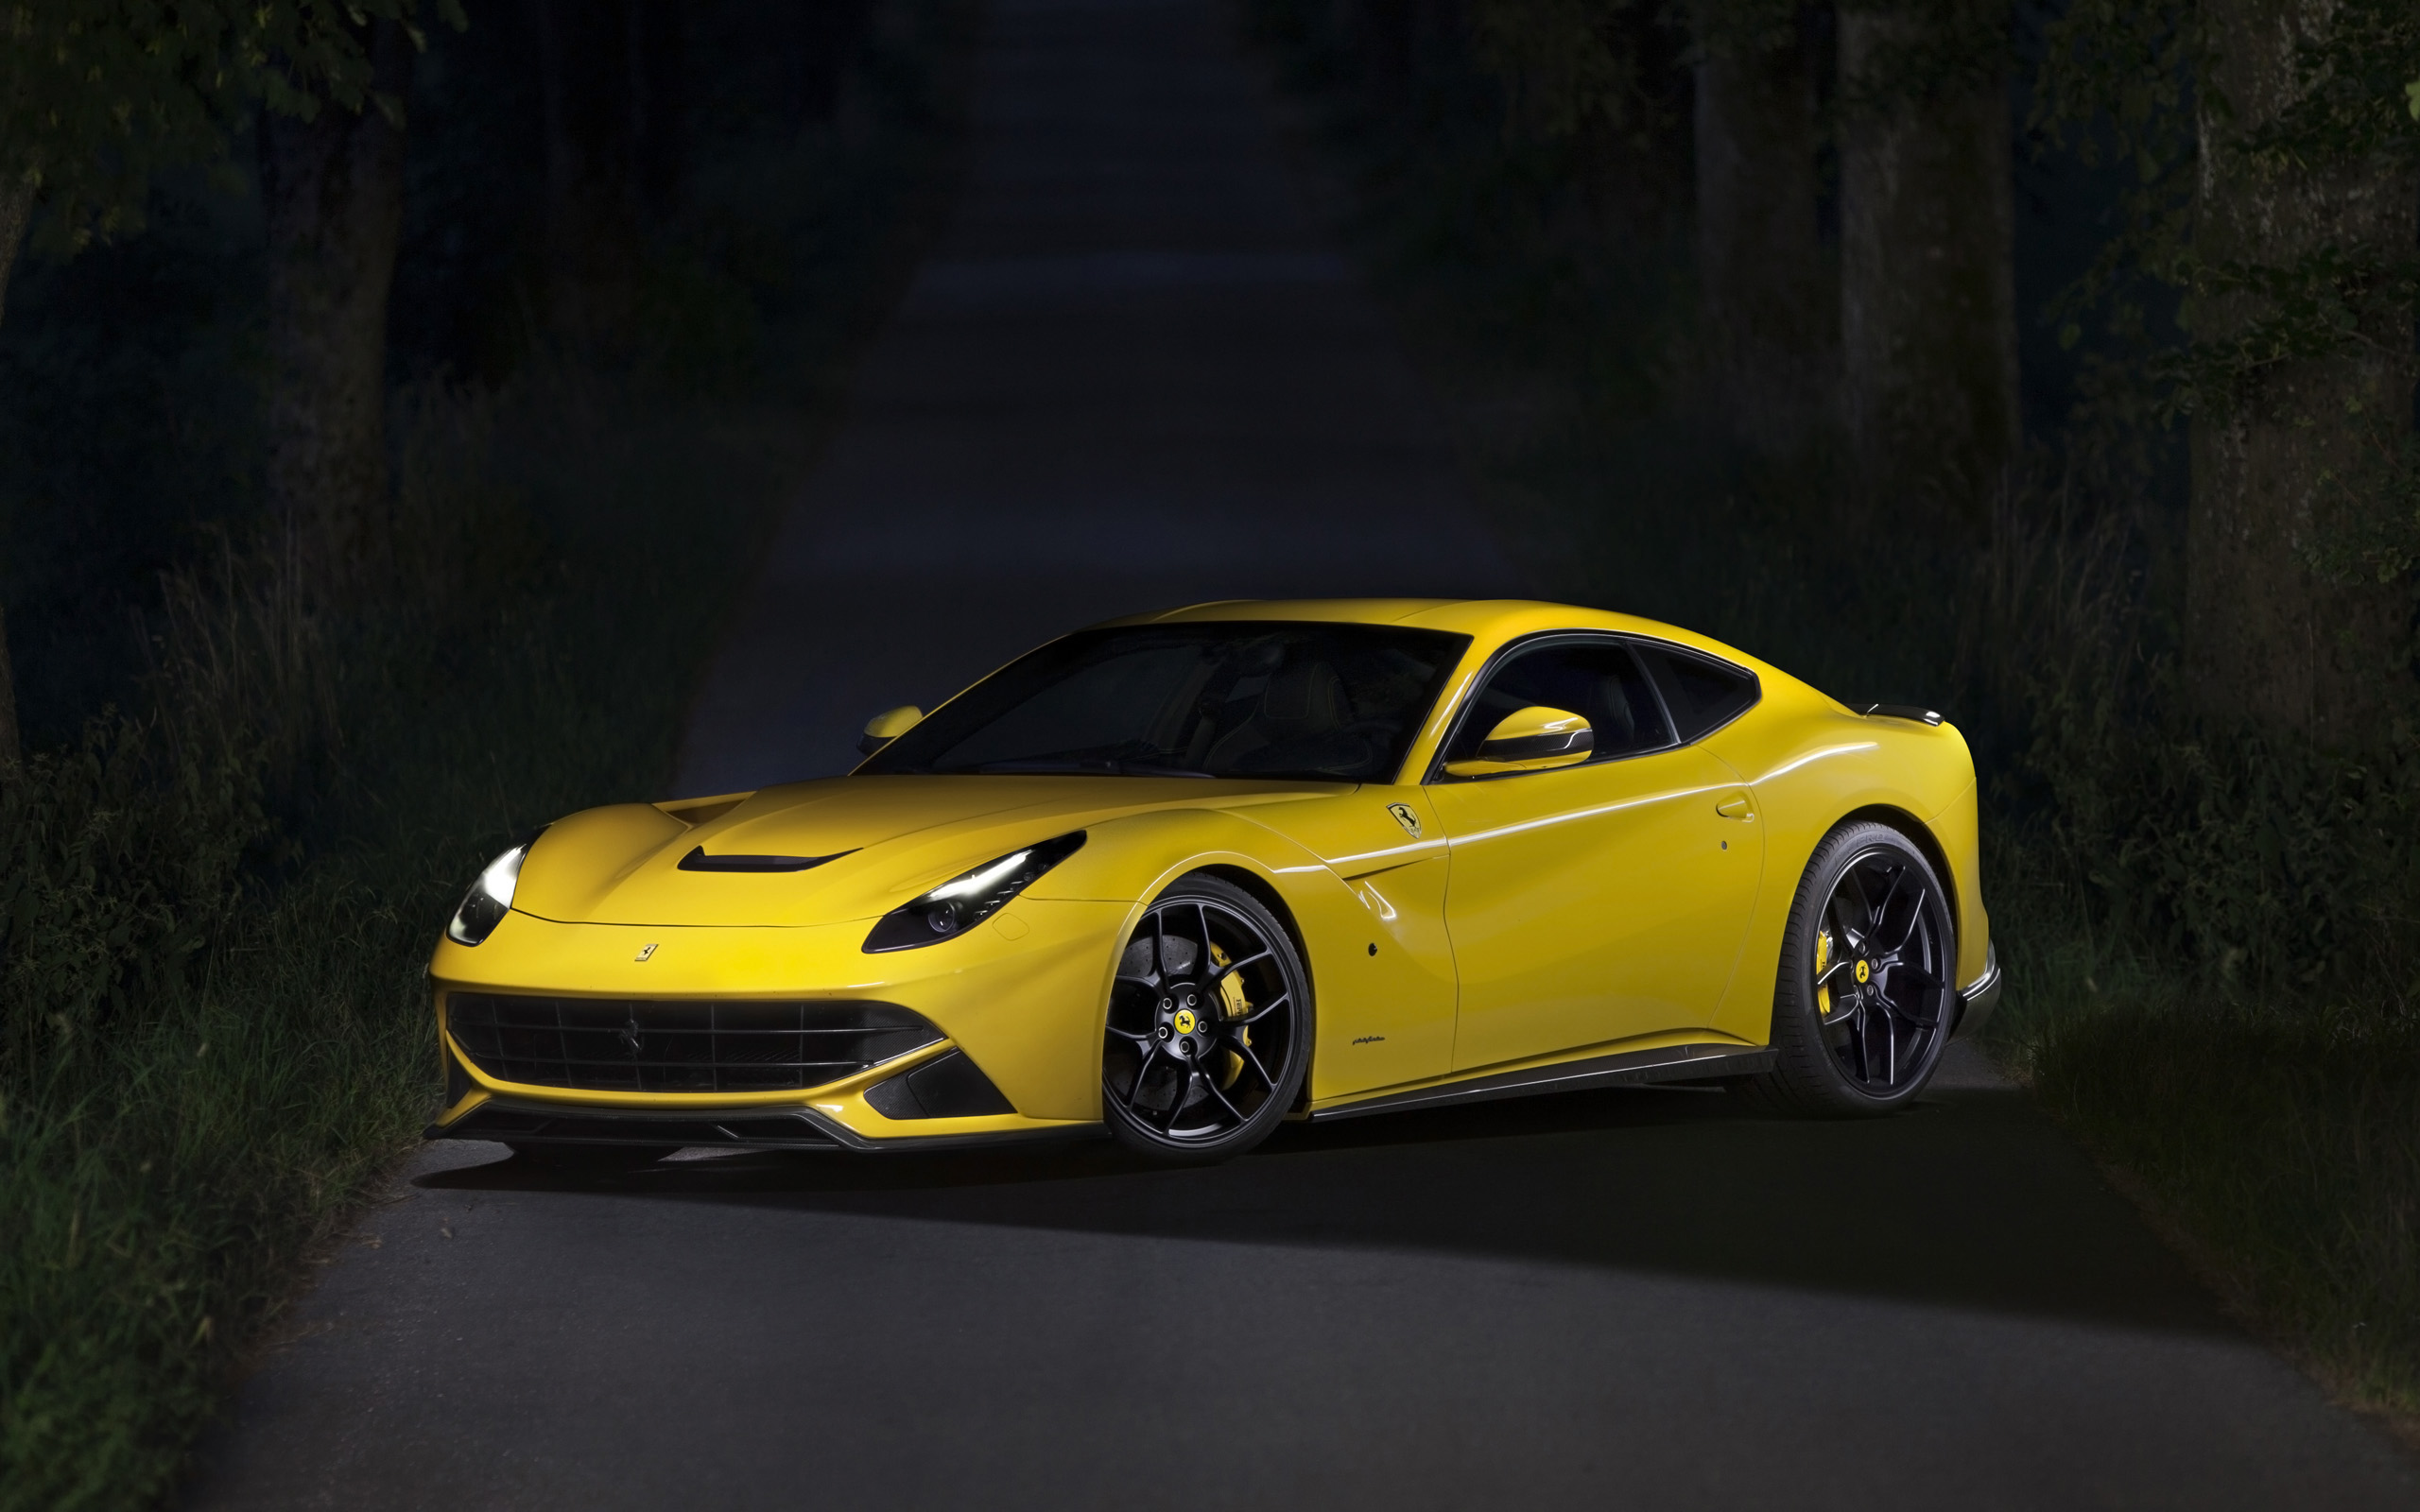 Car Wallpaper Hd Iphone 4 Novitec Rosso Ferrari F12berlinetta Wallpaper Hd Car